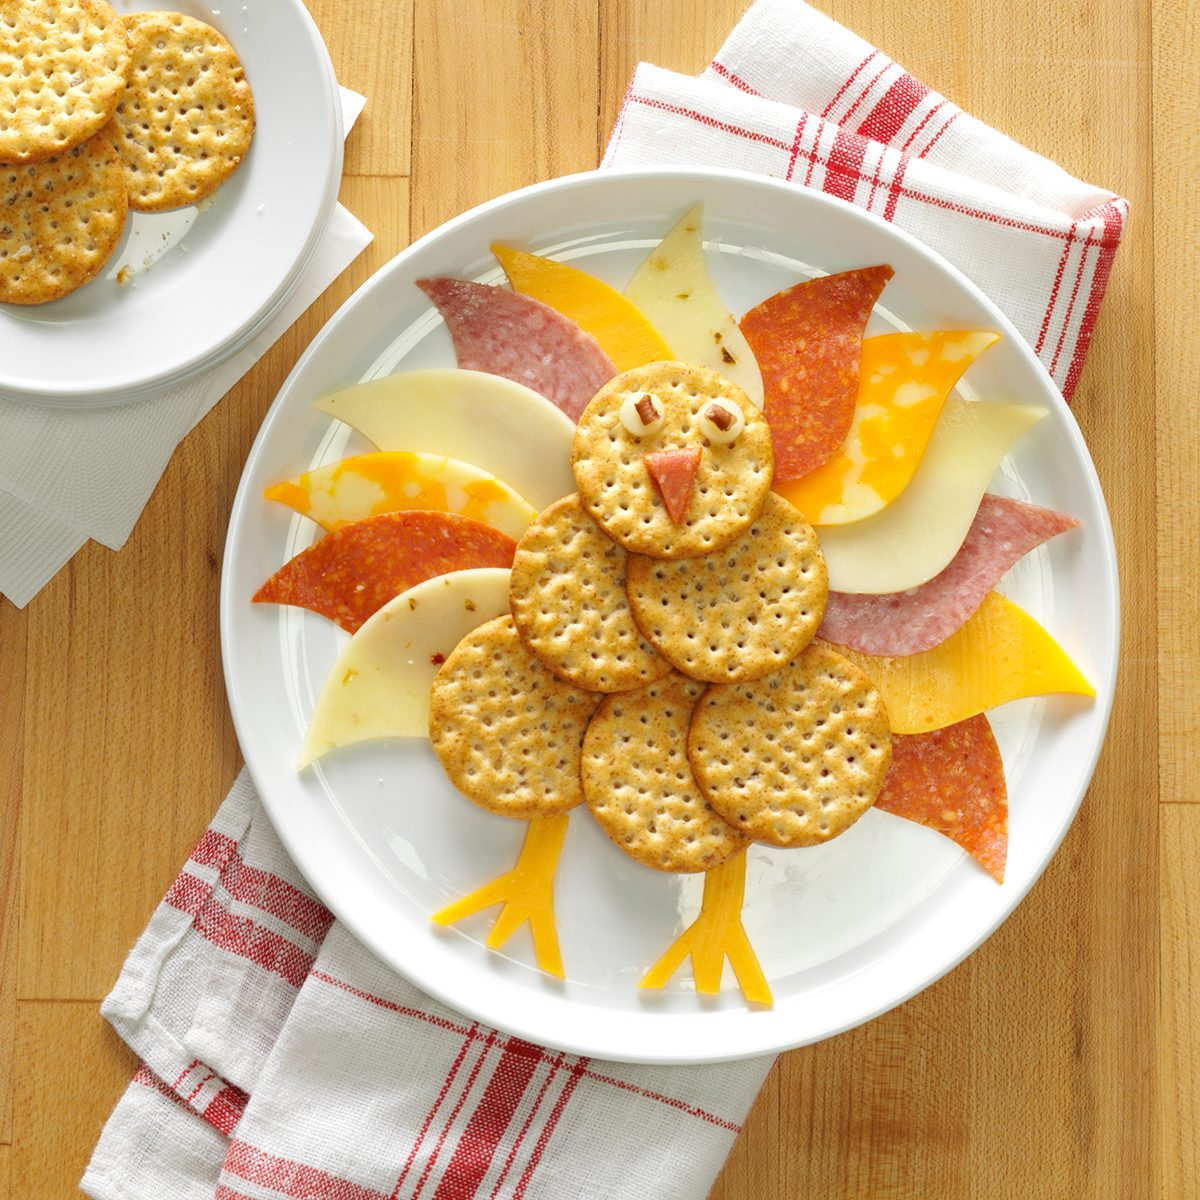 Cute turkey-shaped cheese appetizer